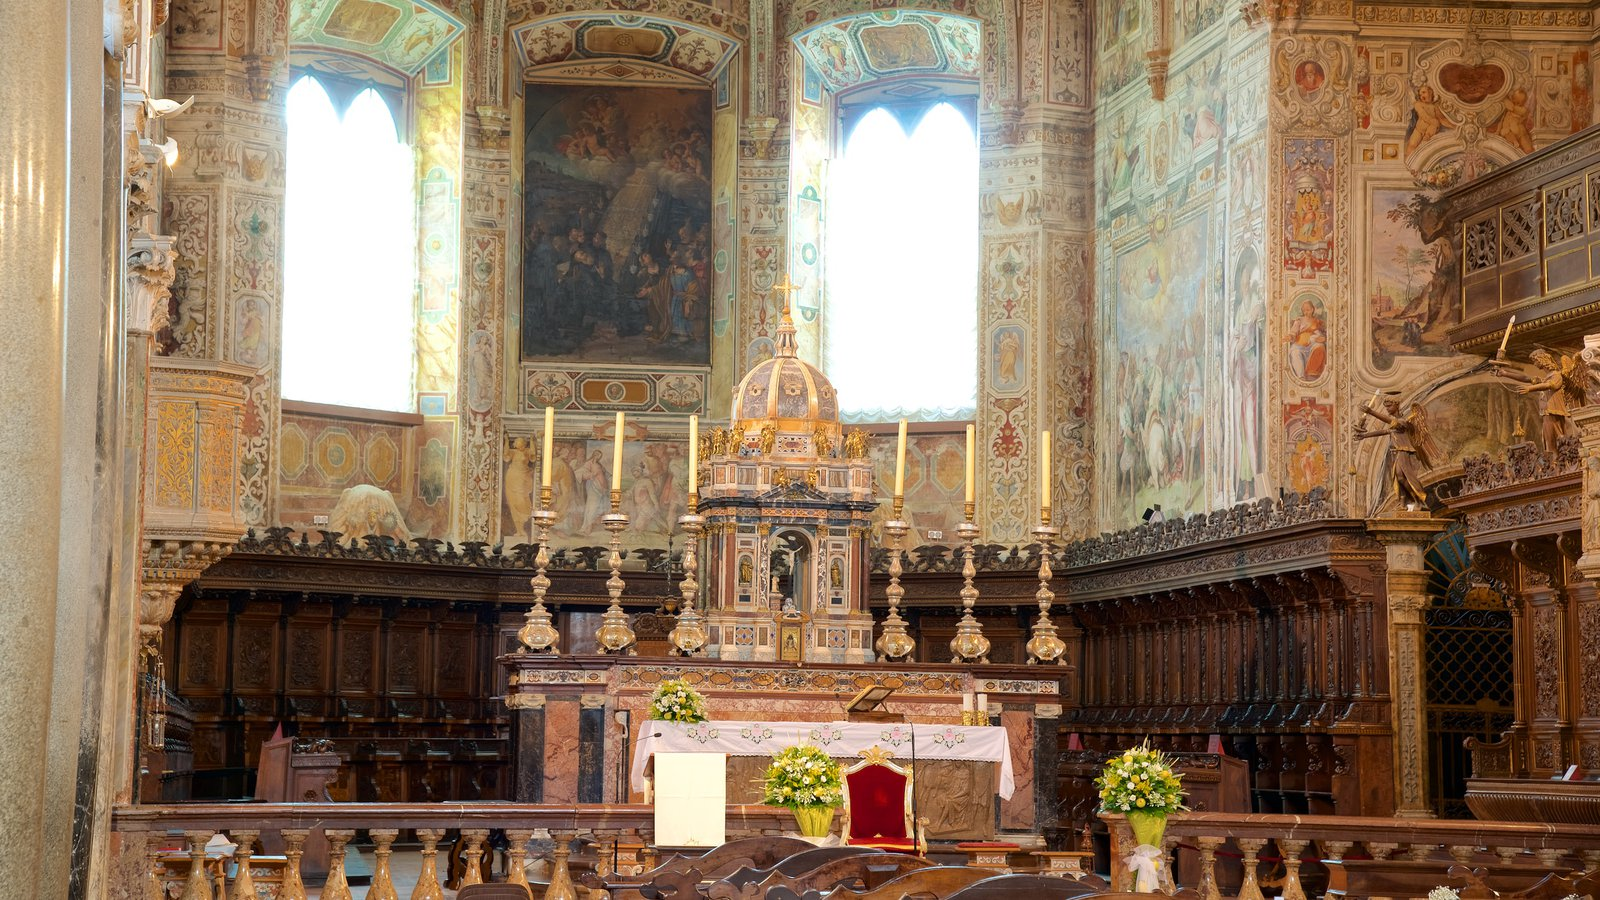 Basilica San Pietro featuring religious aspects, interior views and a church or cathedral